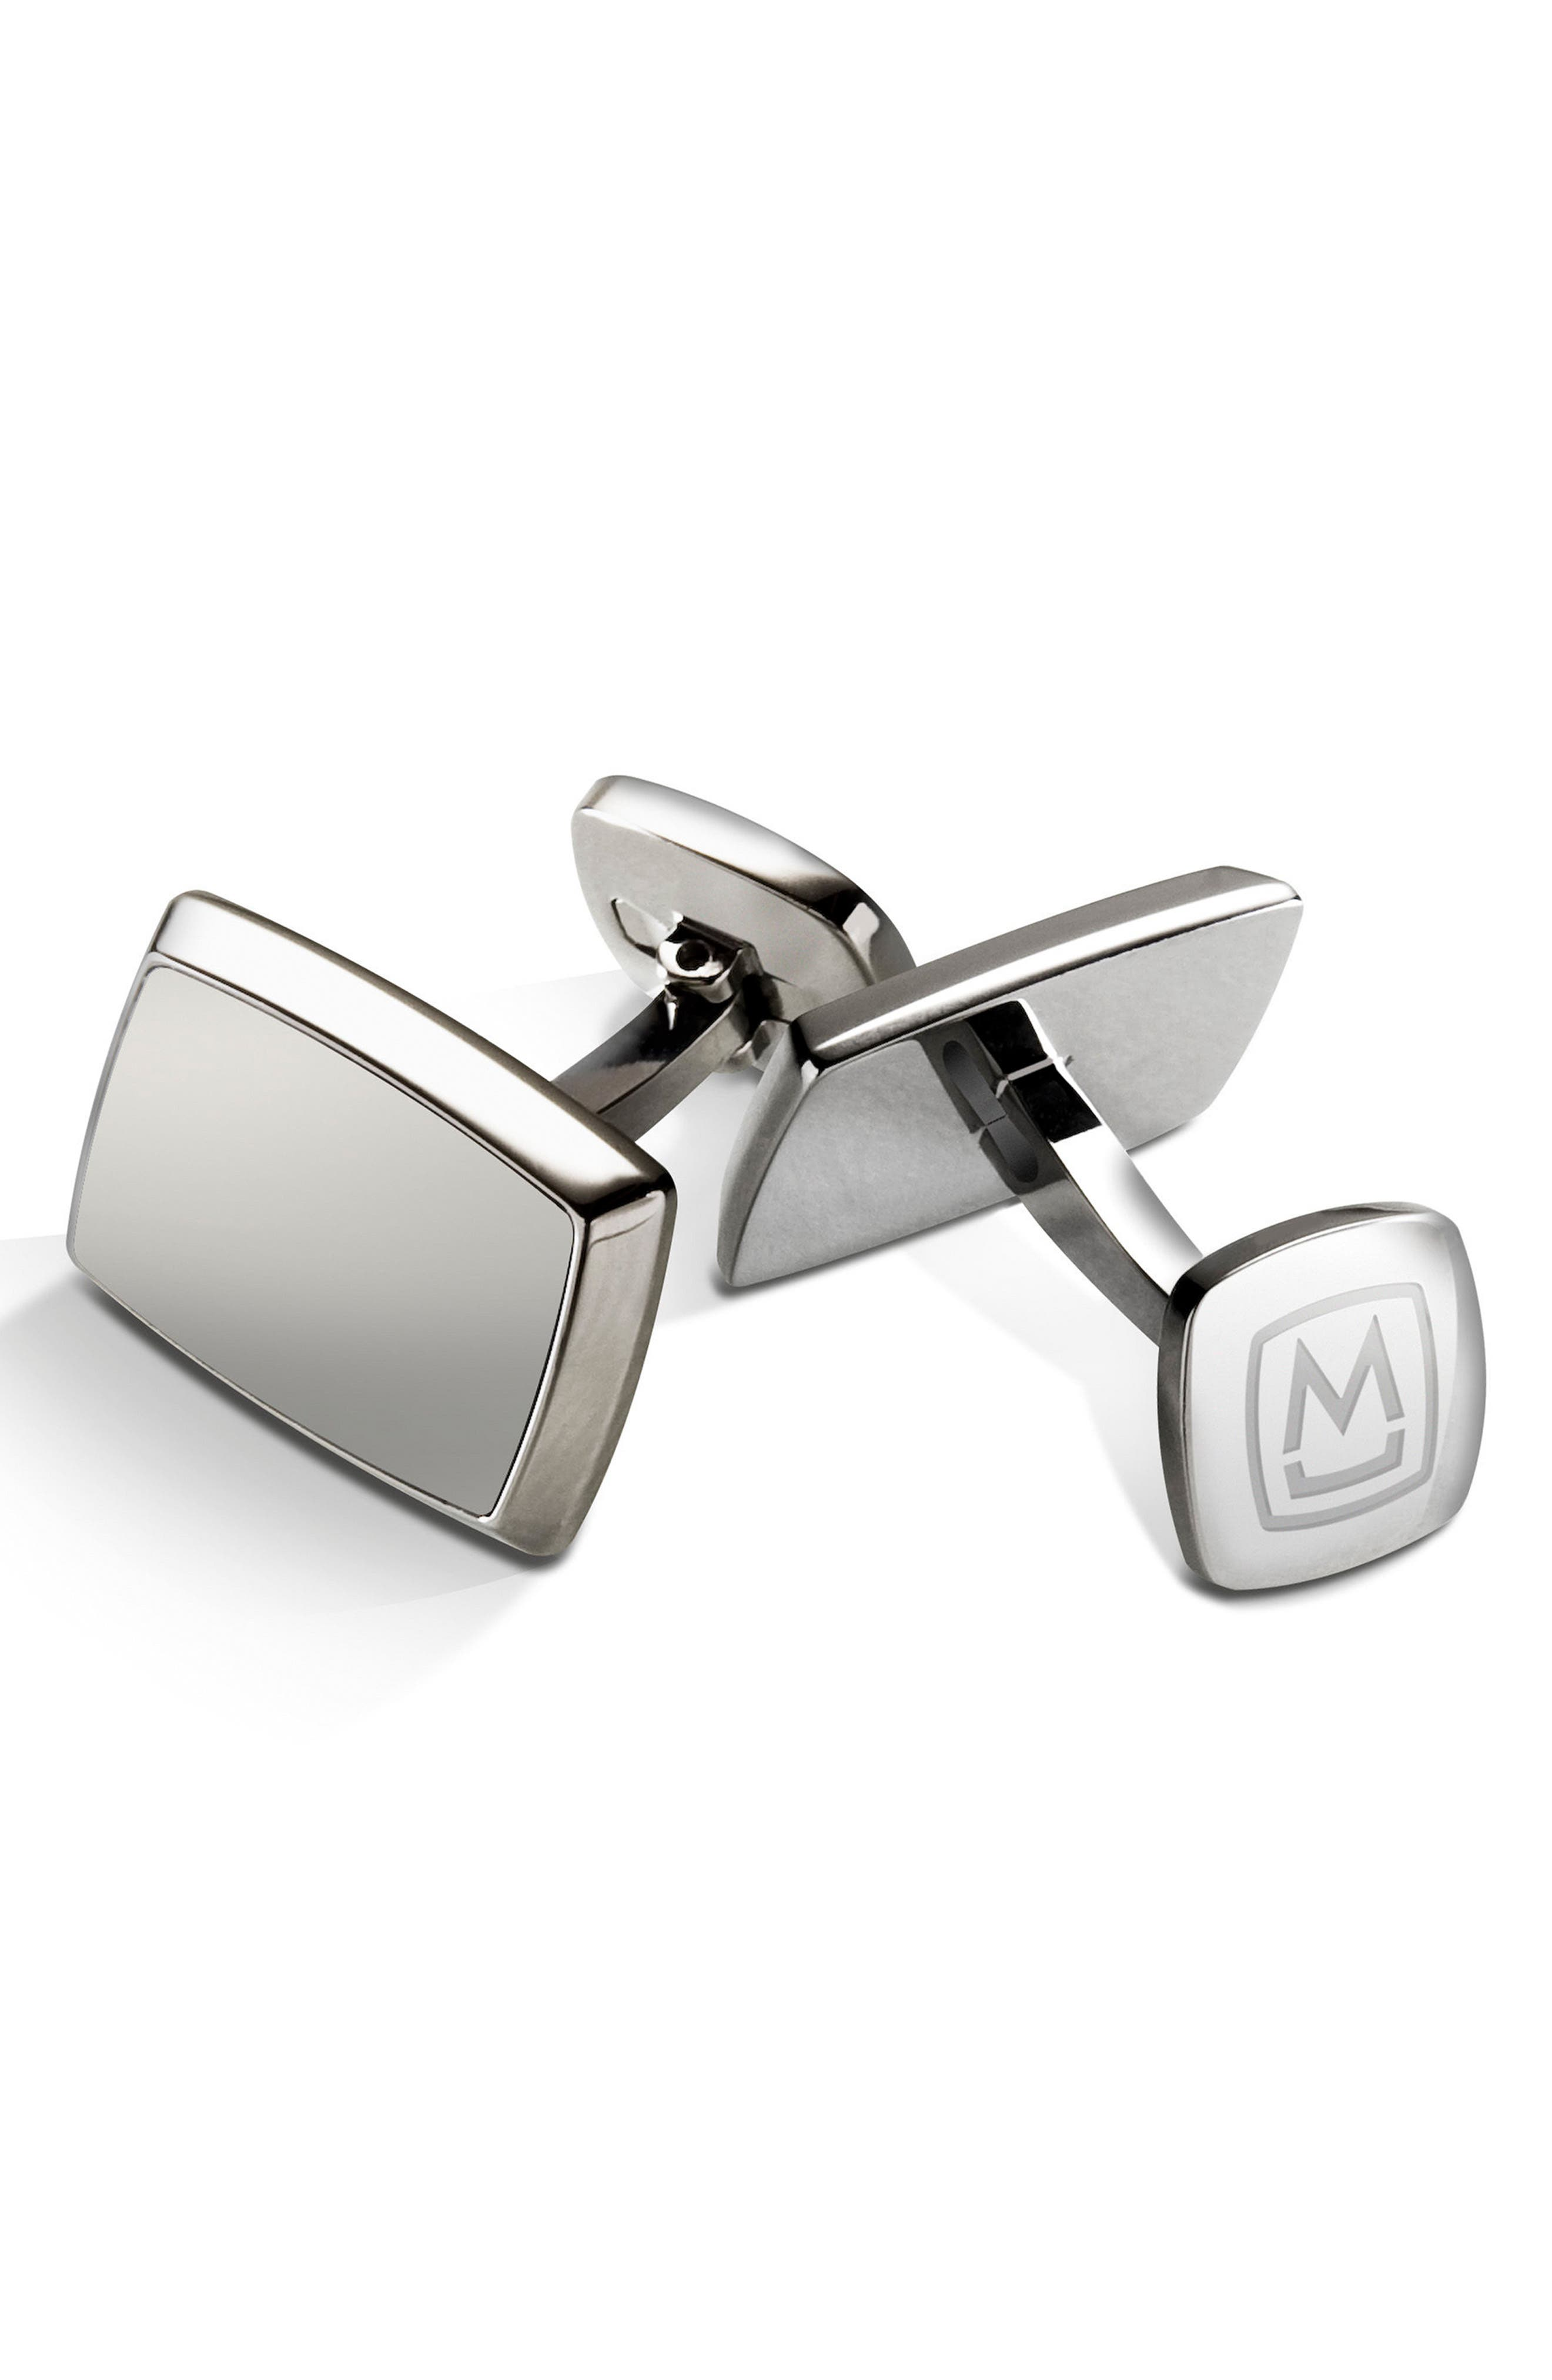 M-Clip Stainless Steel Cuff Links,                         Main,                         color, 040